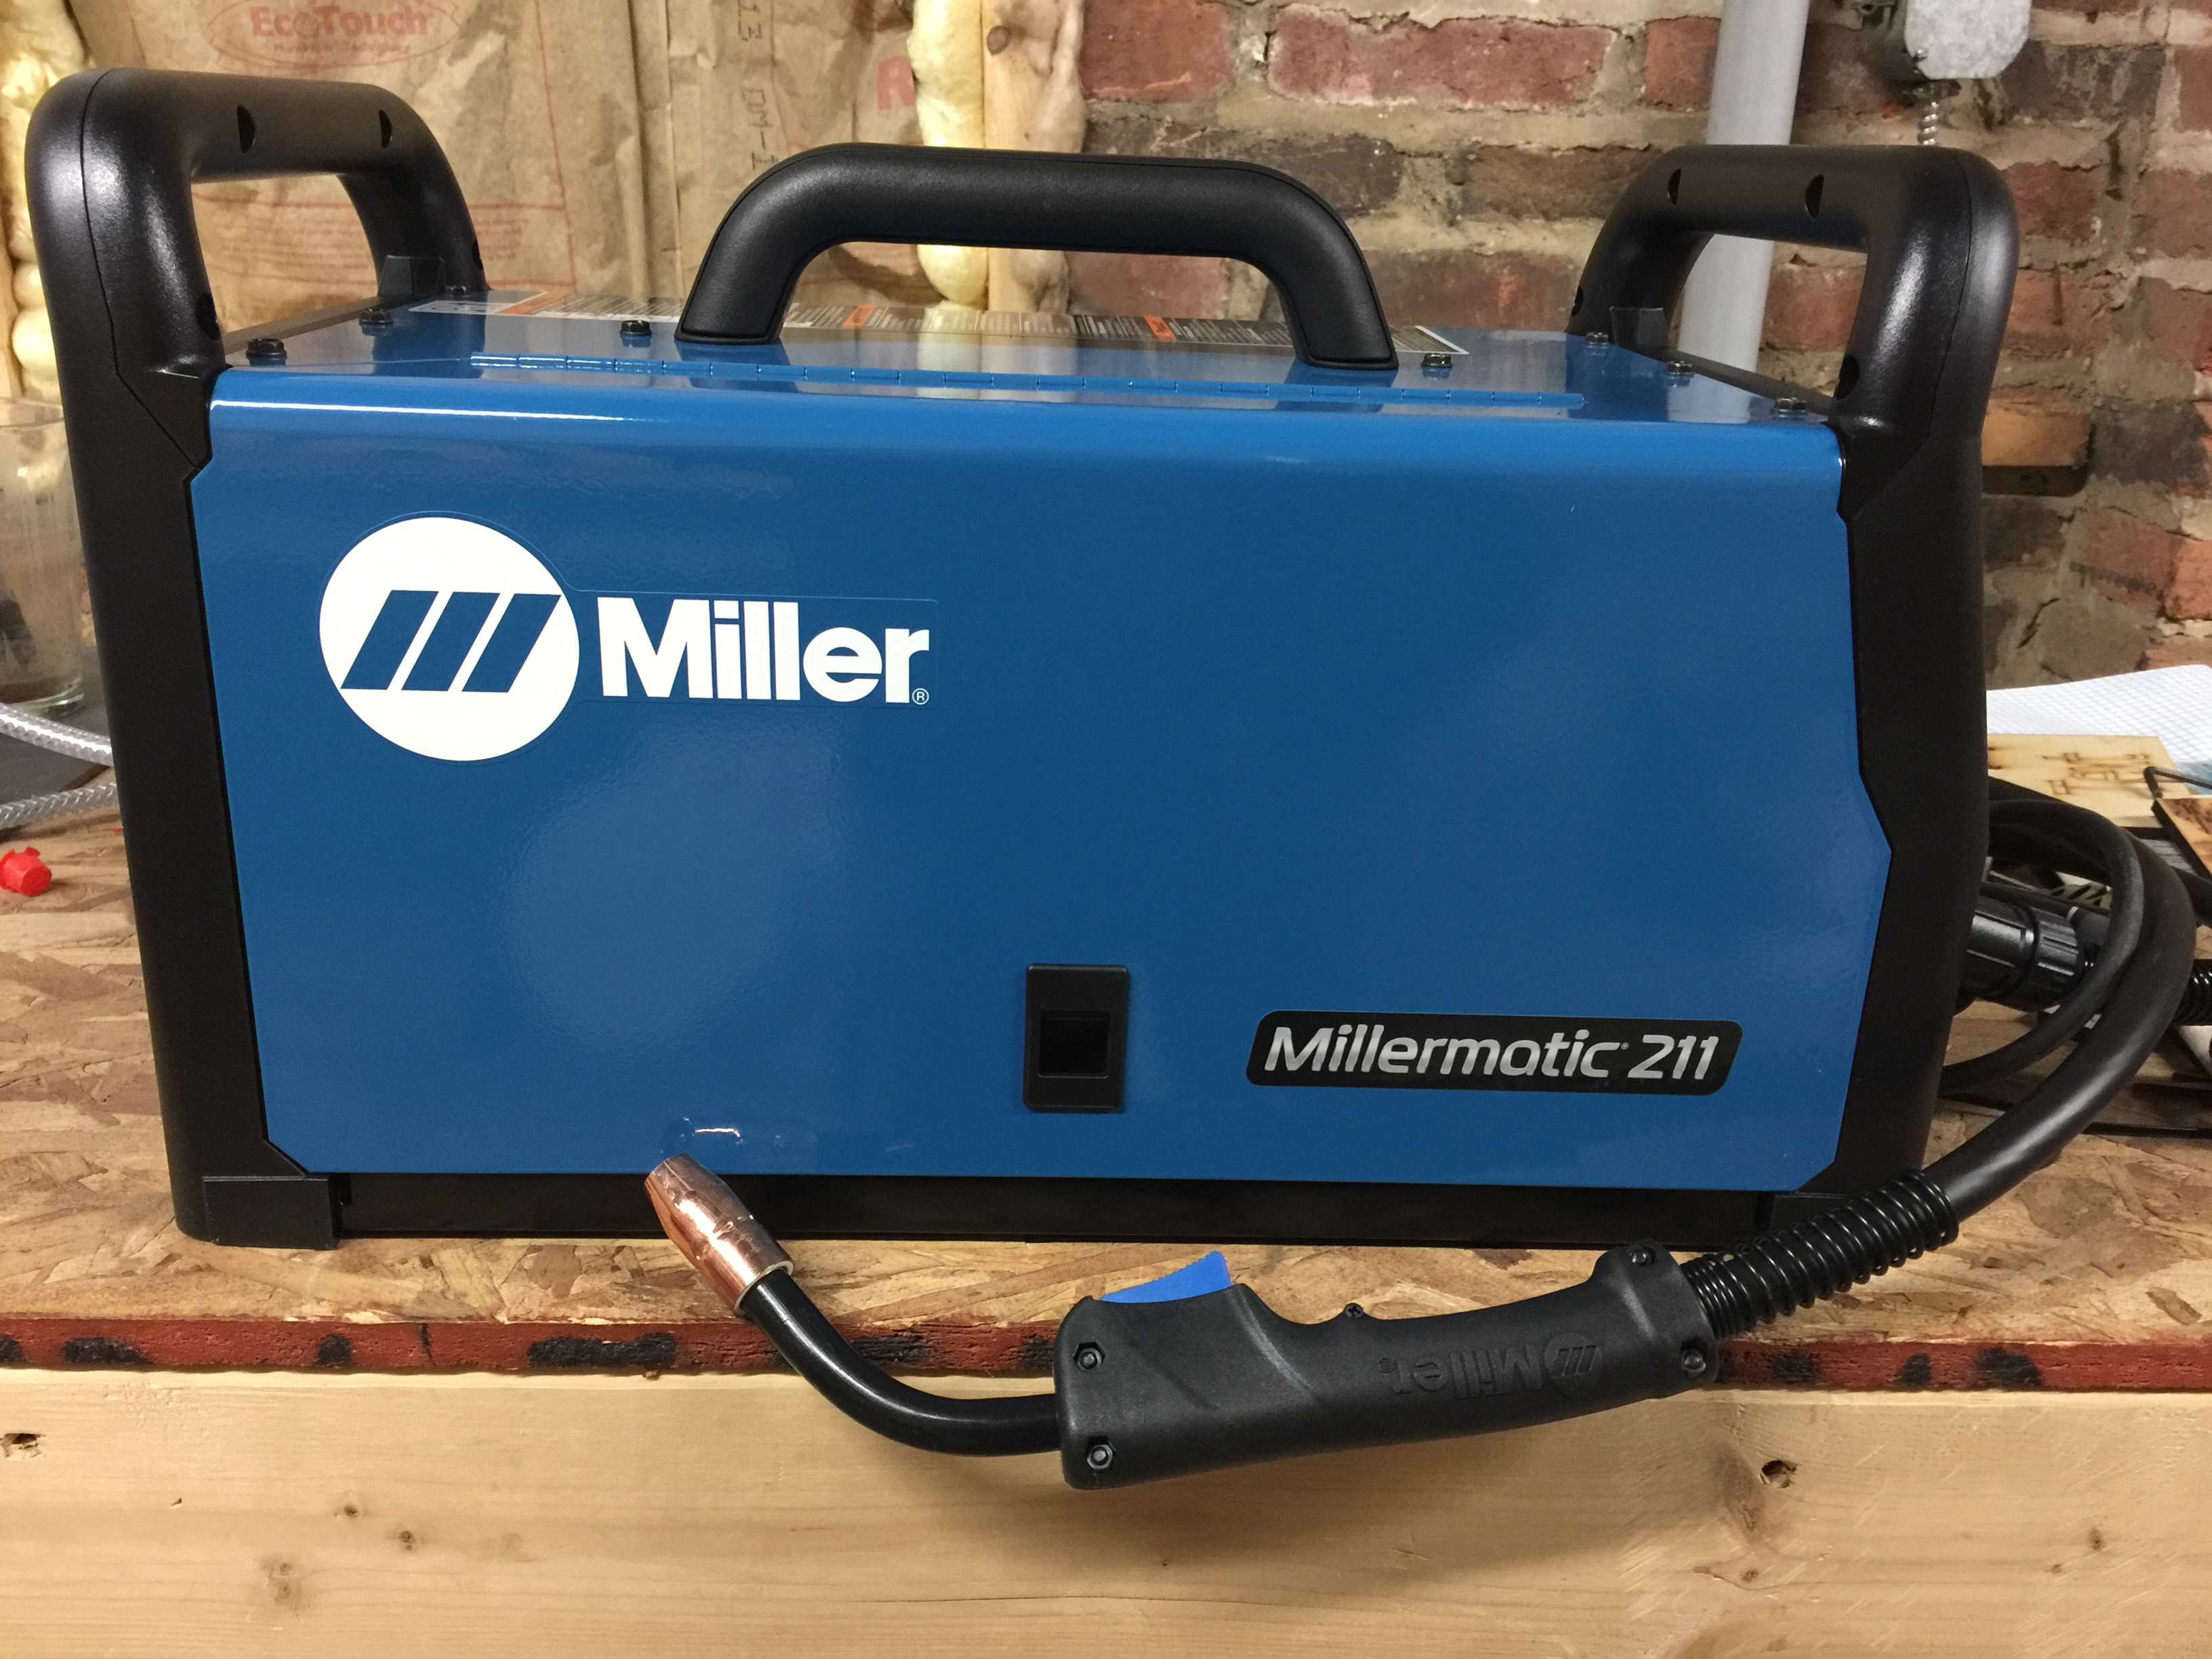 1 of the Foundery's 6 new Millermatic 211 MIG machines